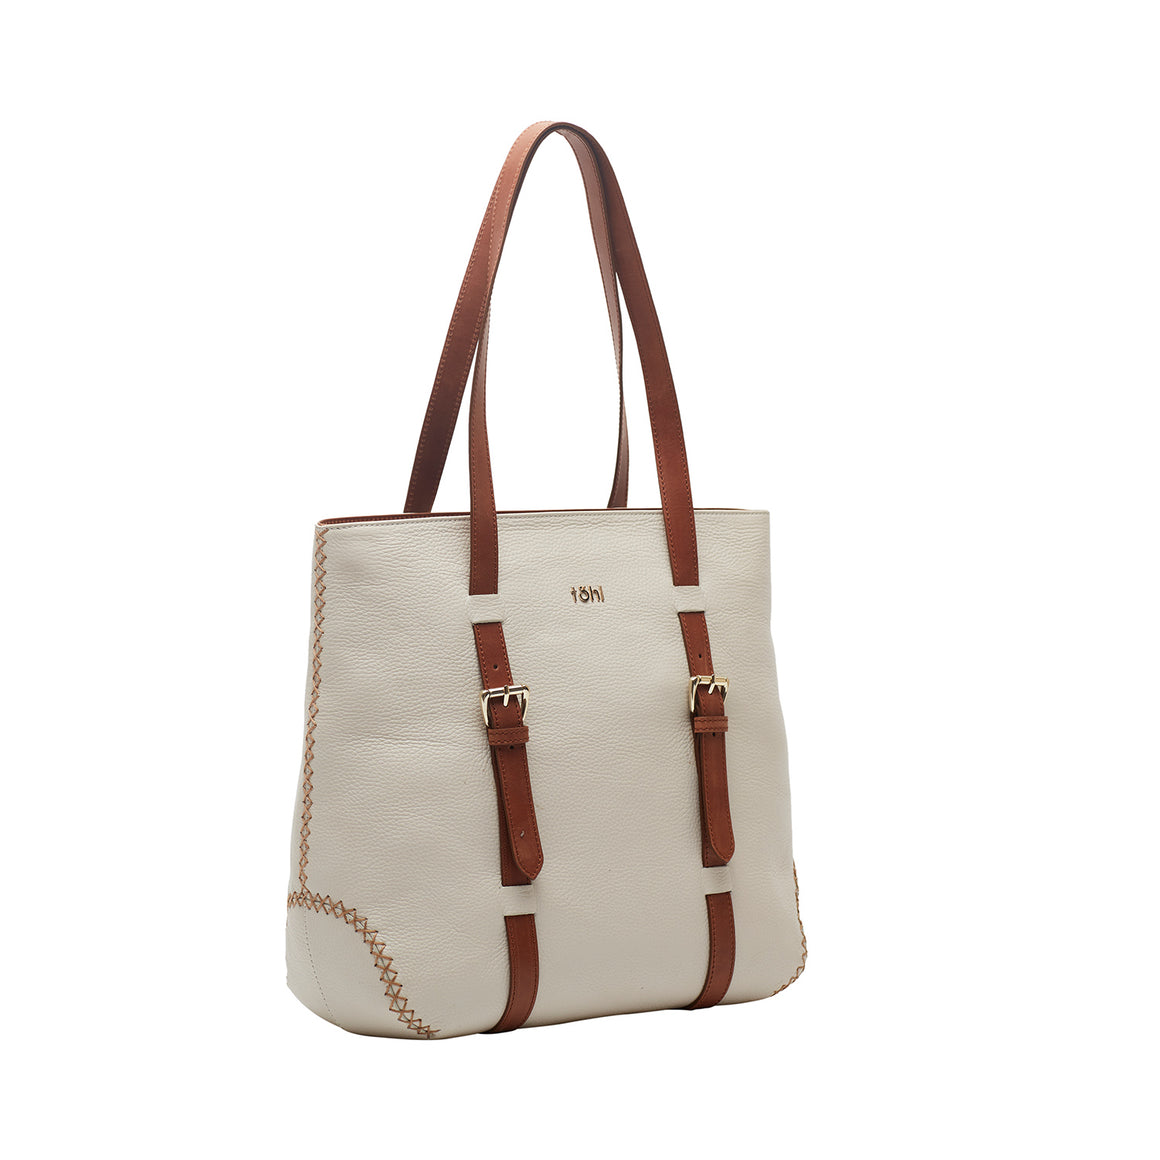 TT 0008 - TOHL RADNOR WOMEN'S TOTE & BUCKET BAG - WHITE